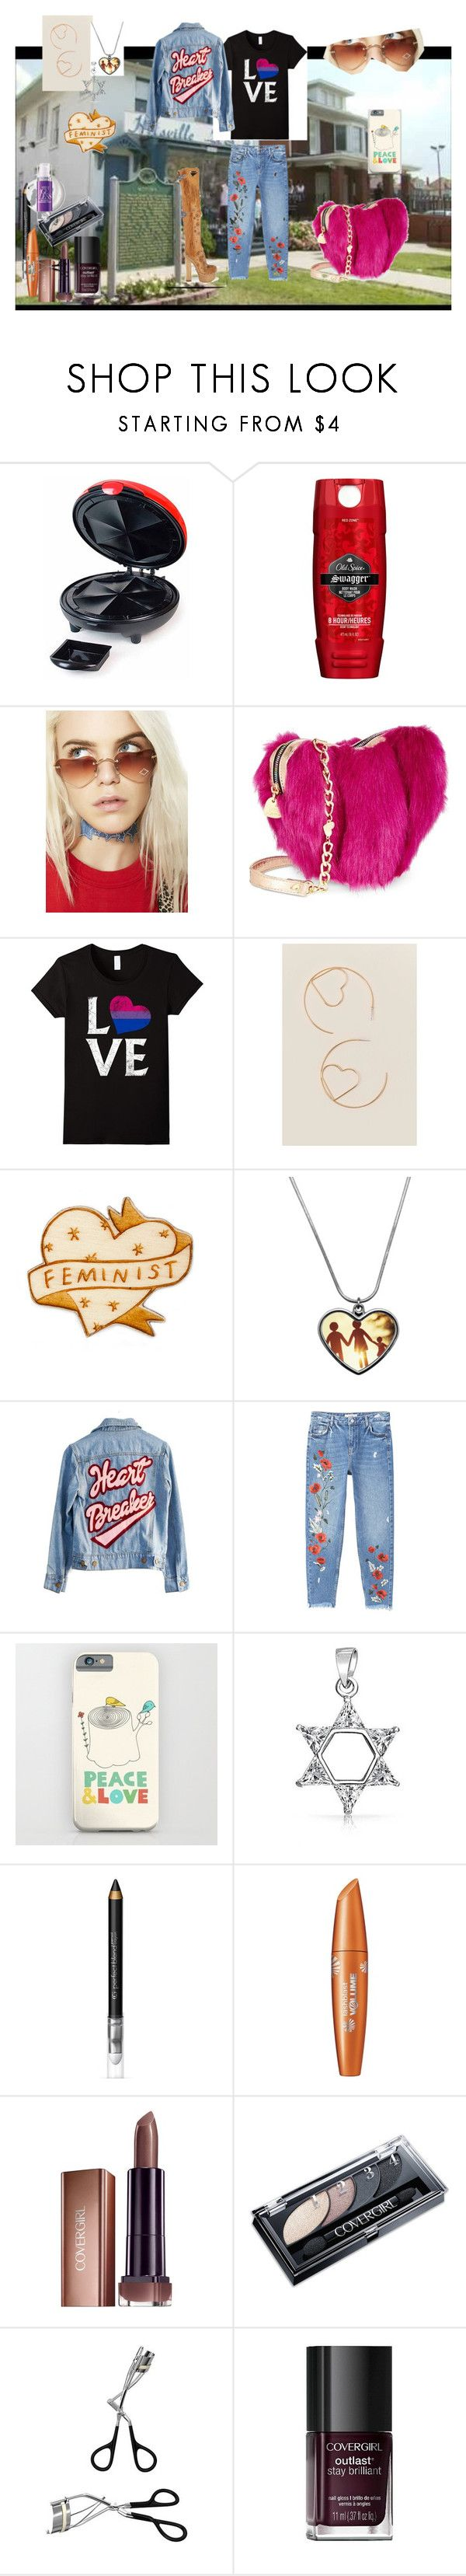 """""""- H E A R T S - ( a set for a group contest)"""" by naomig-dix ❤ liked on Polyvore featuring Nostalgia Electrics, Old Spice, Replay, Betsey Johnson, Francesca's, High Heels Suicide, MANGO, Bling Jewelry and Nemesis"""